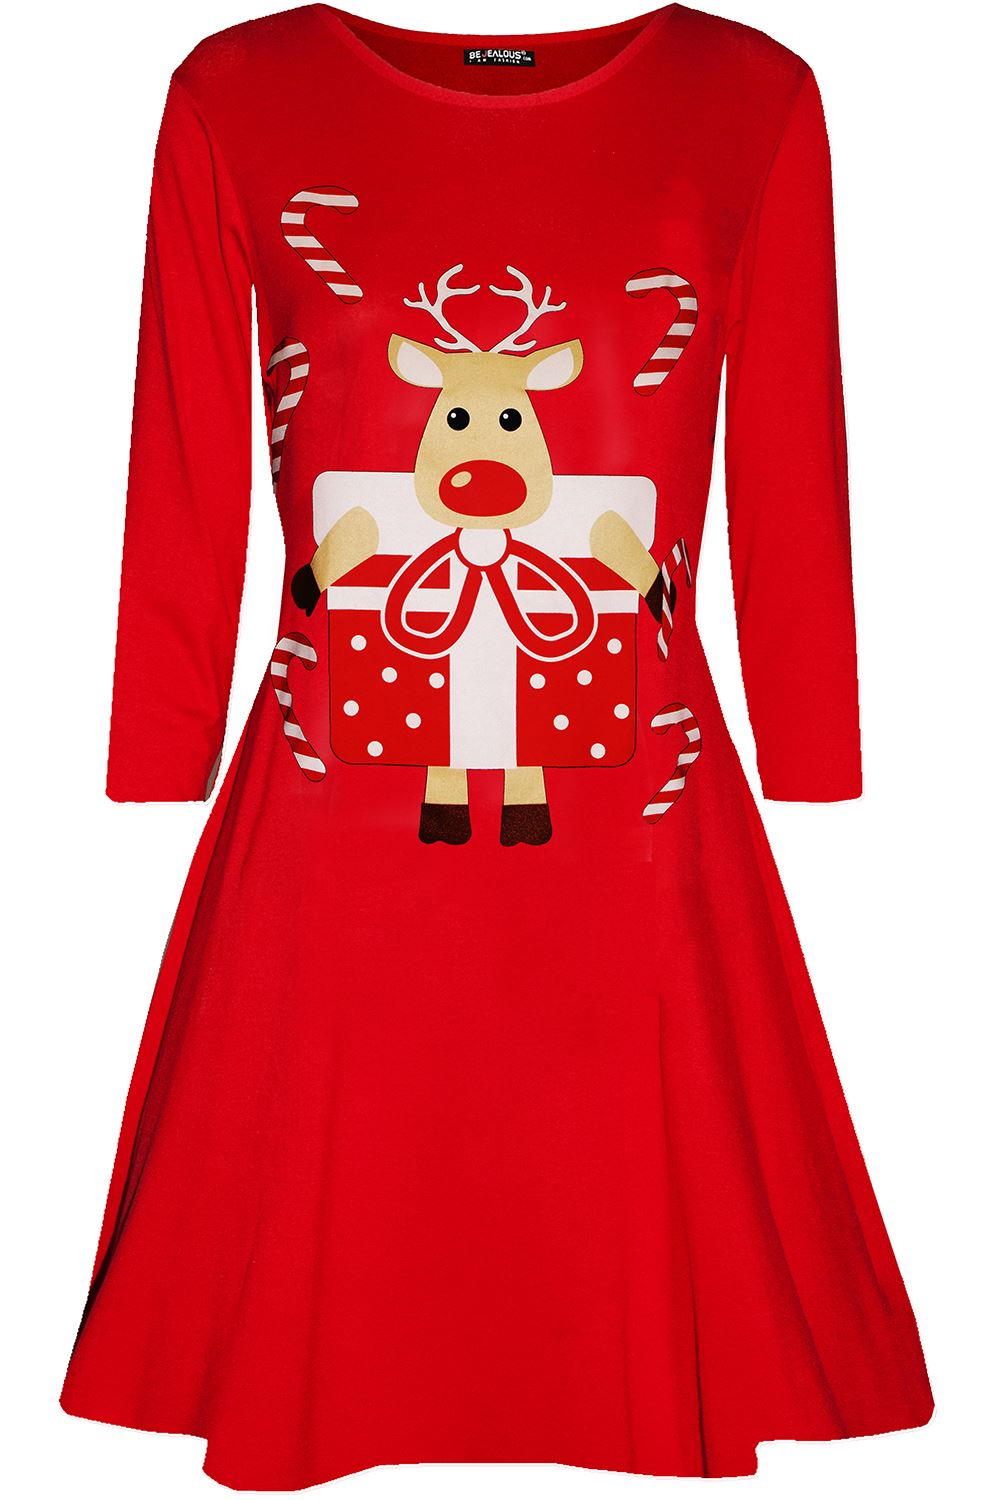 Womens-Ladies-Kids-Girls-Christmas-Xmas-Santa-Reindeer-Flared-Swing-Mini-Dress thumbnail 44